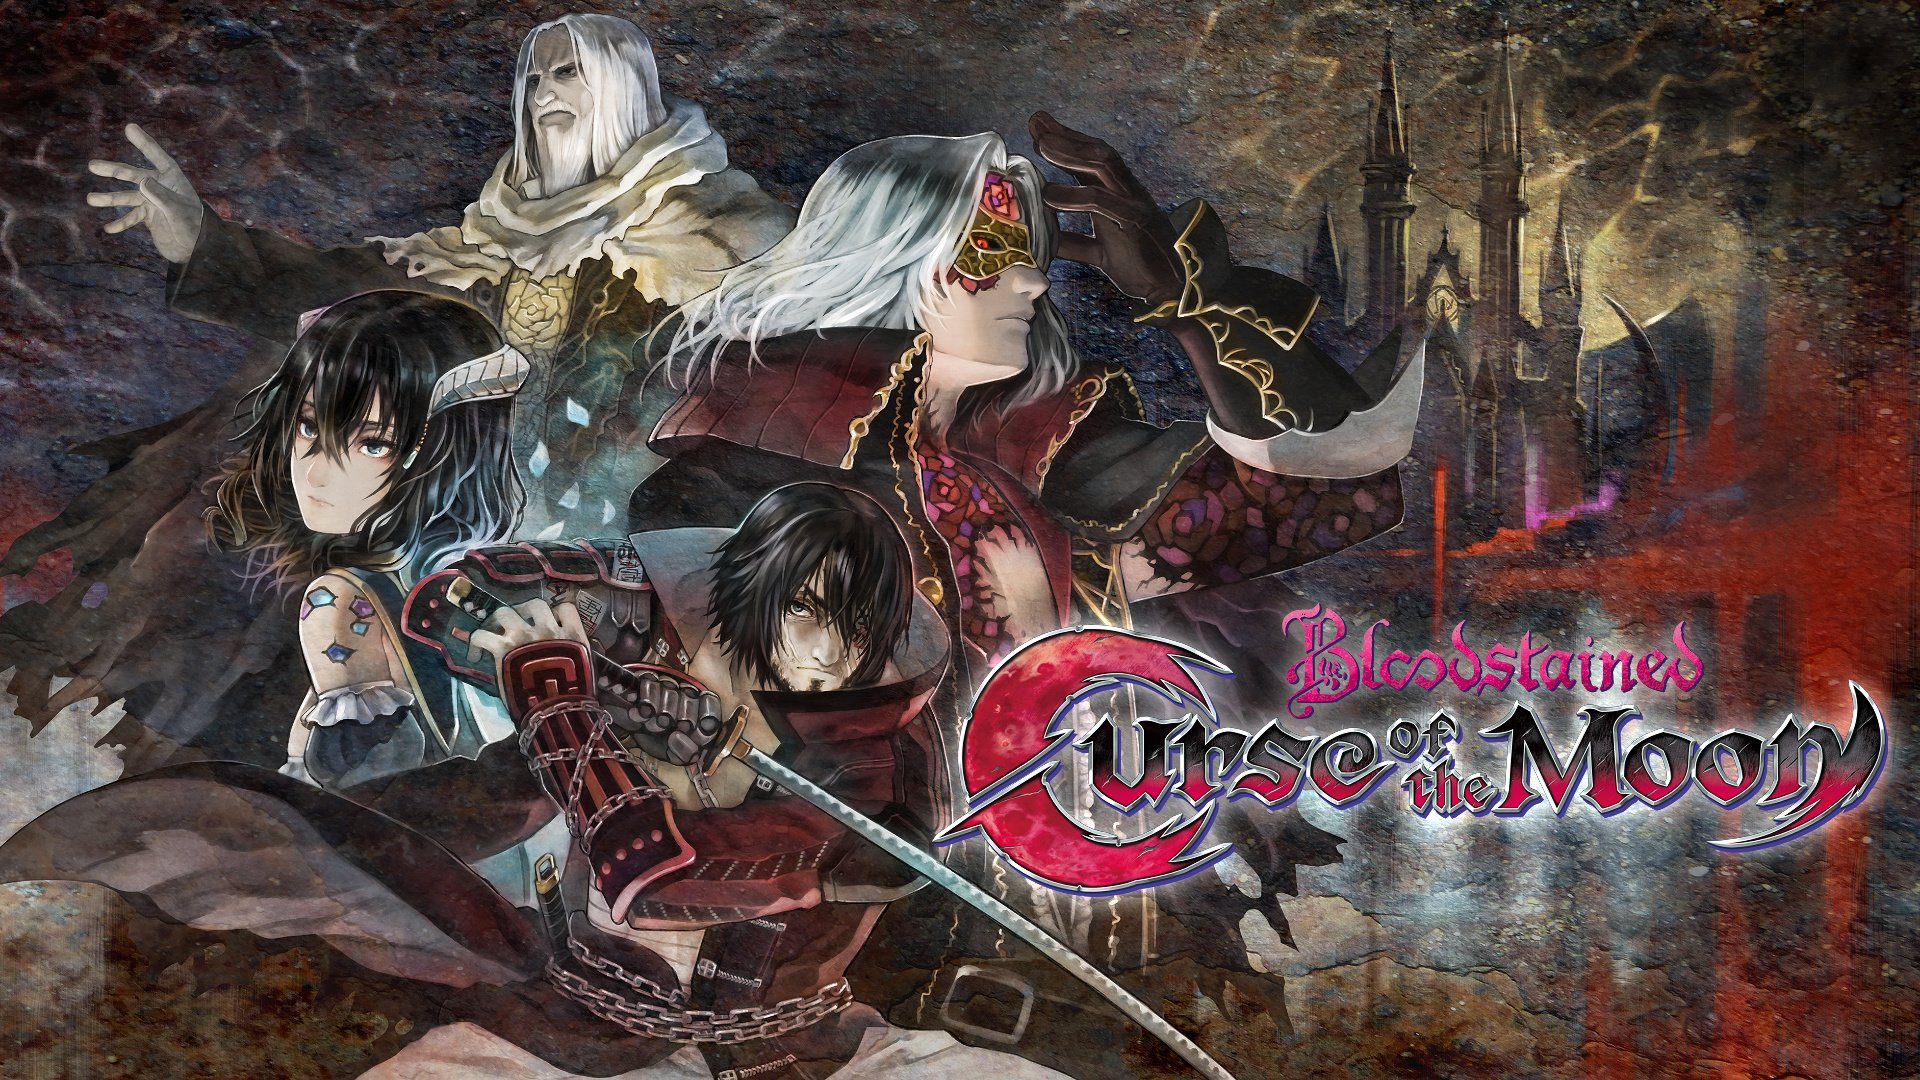 Retro Castlevania Inspired Prequel For Bloodstained Announced, Arrives This Month